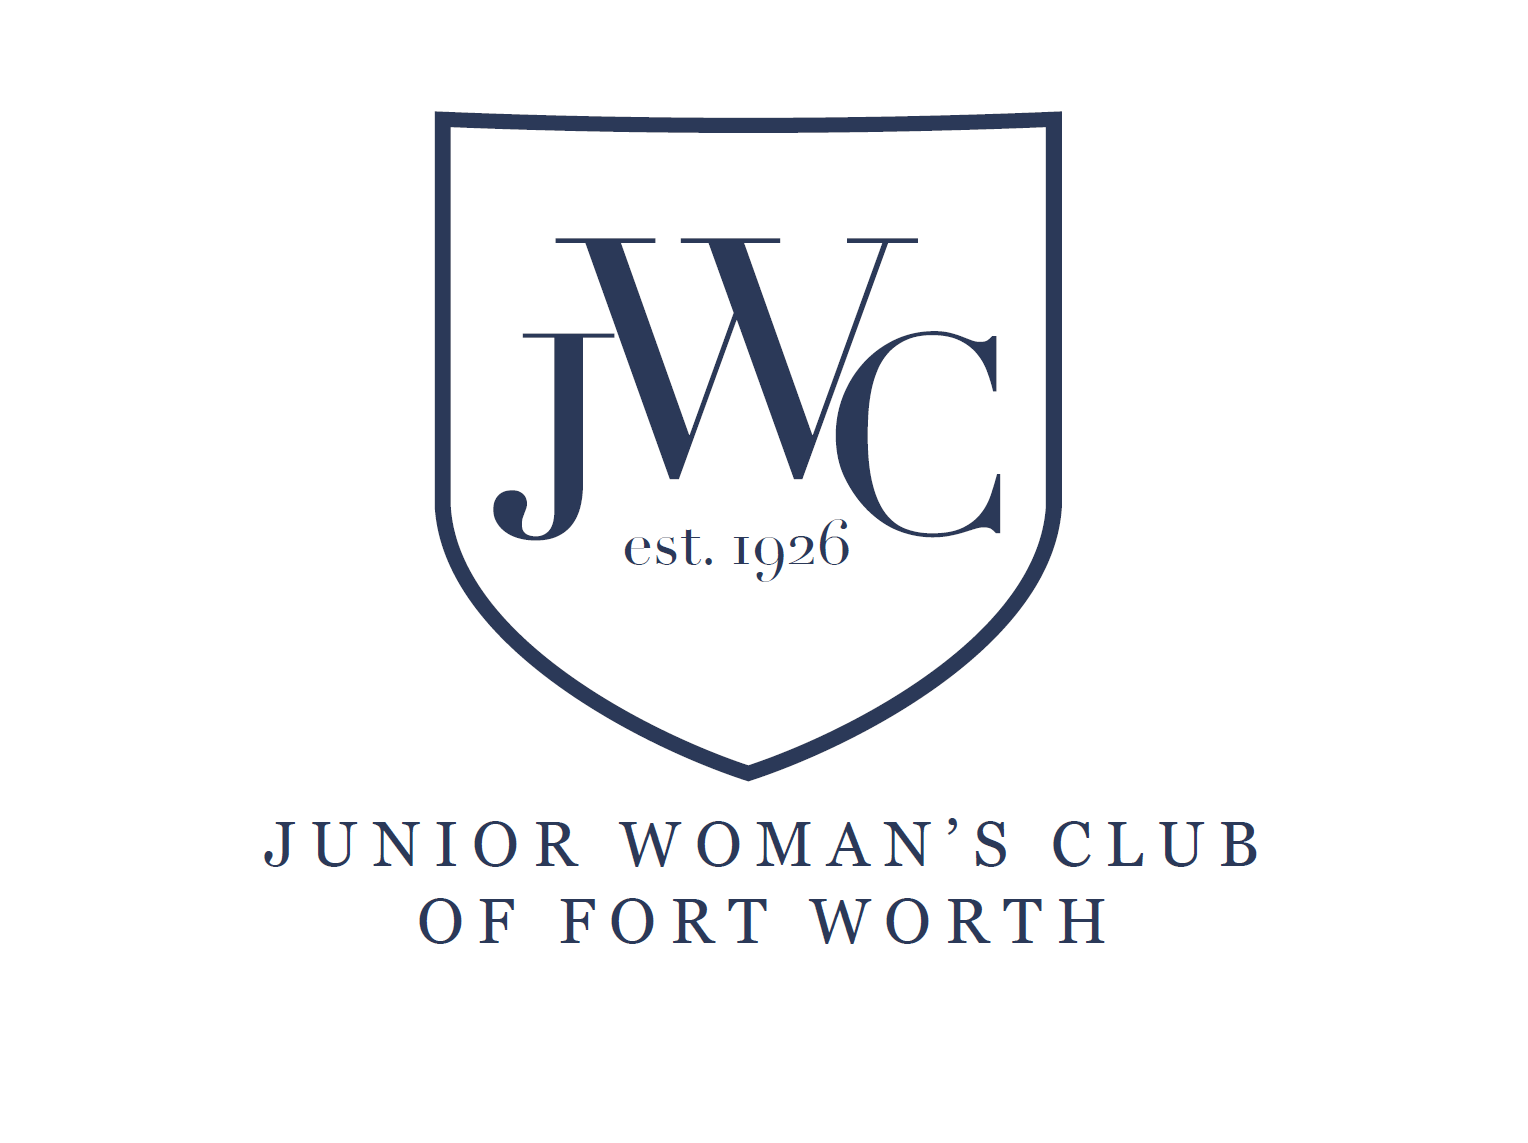 The Junior Woman's Club of Fort Worth